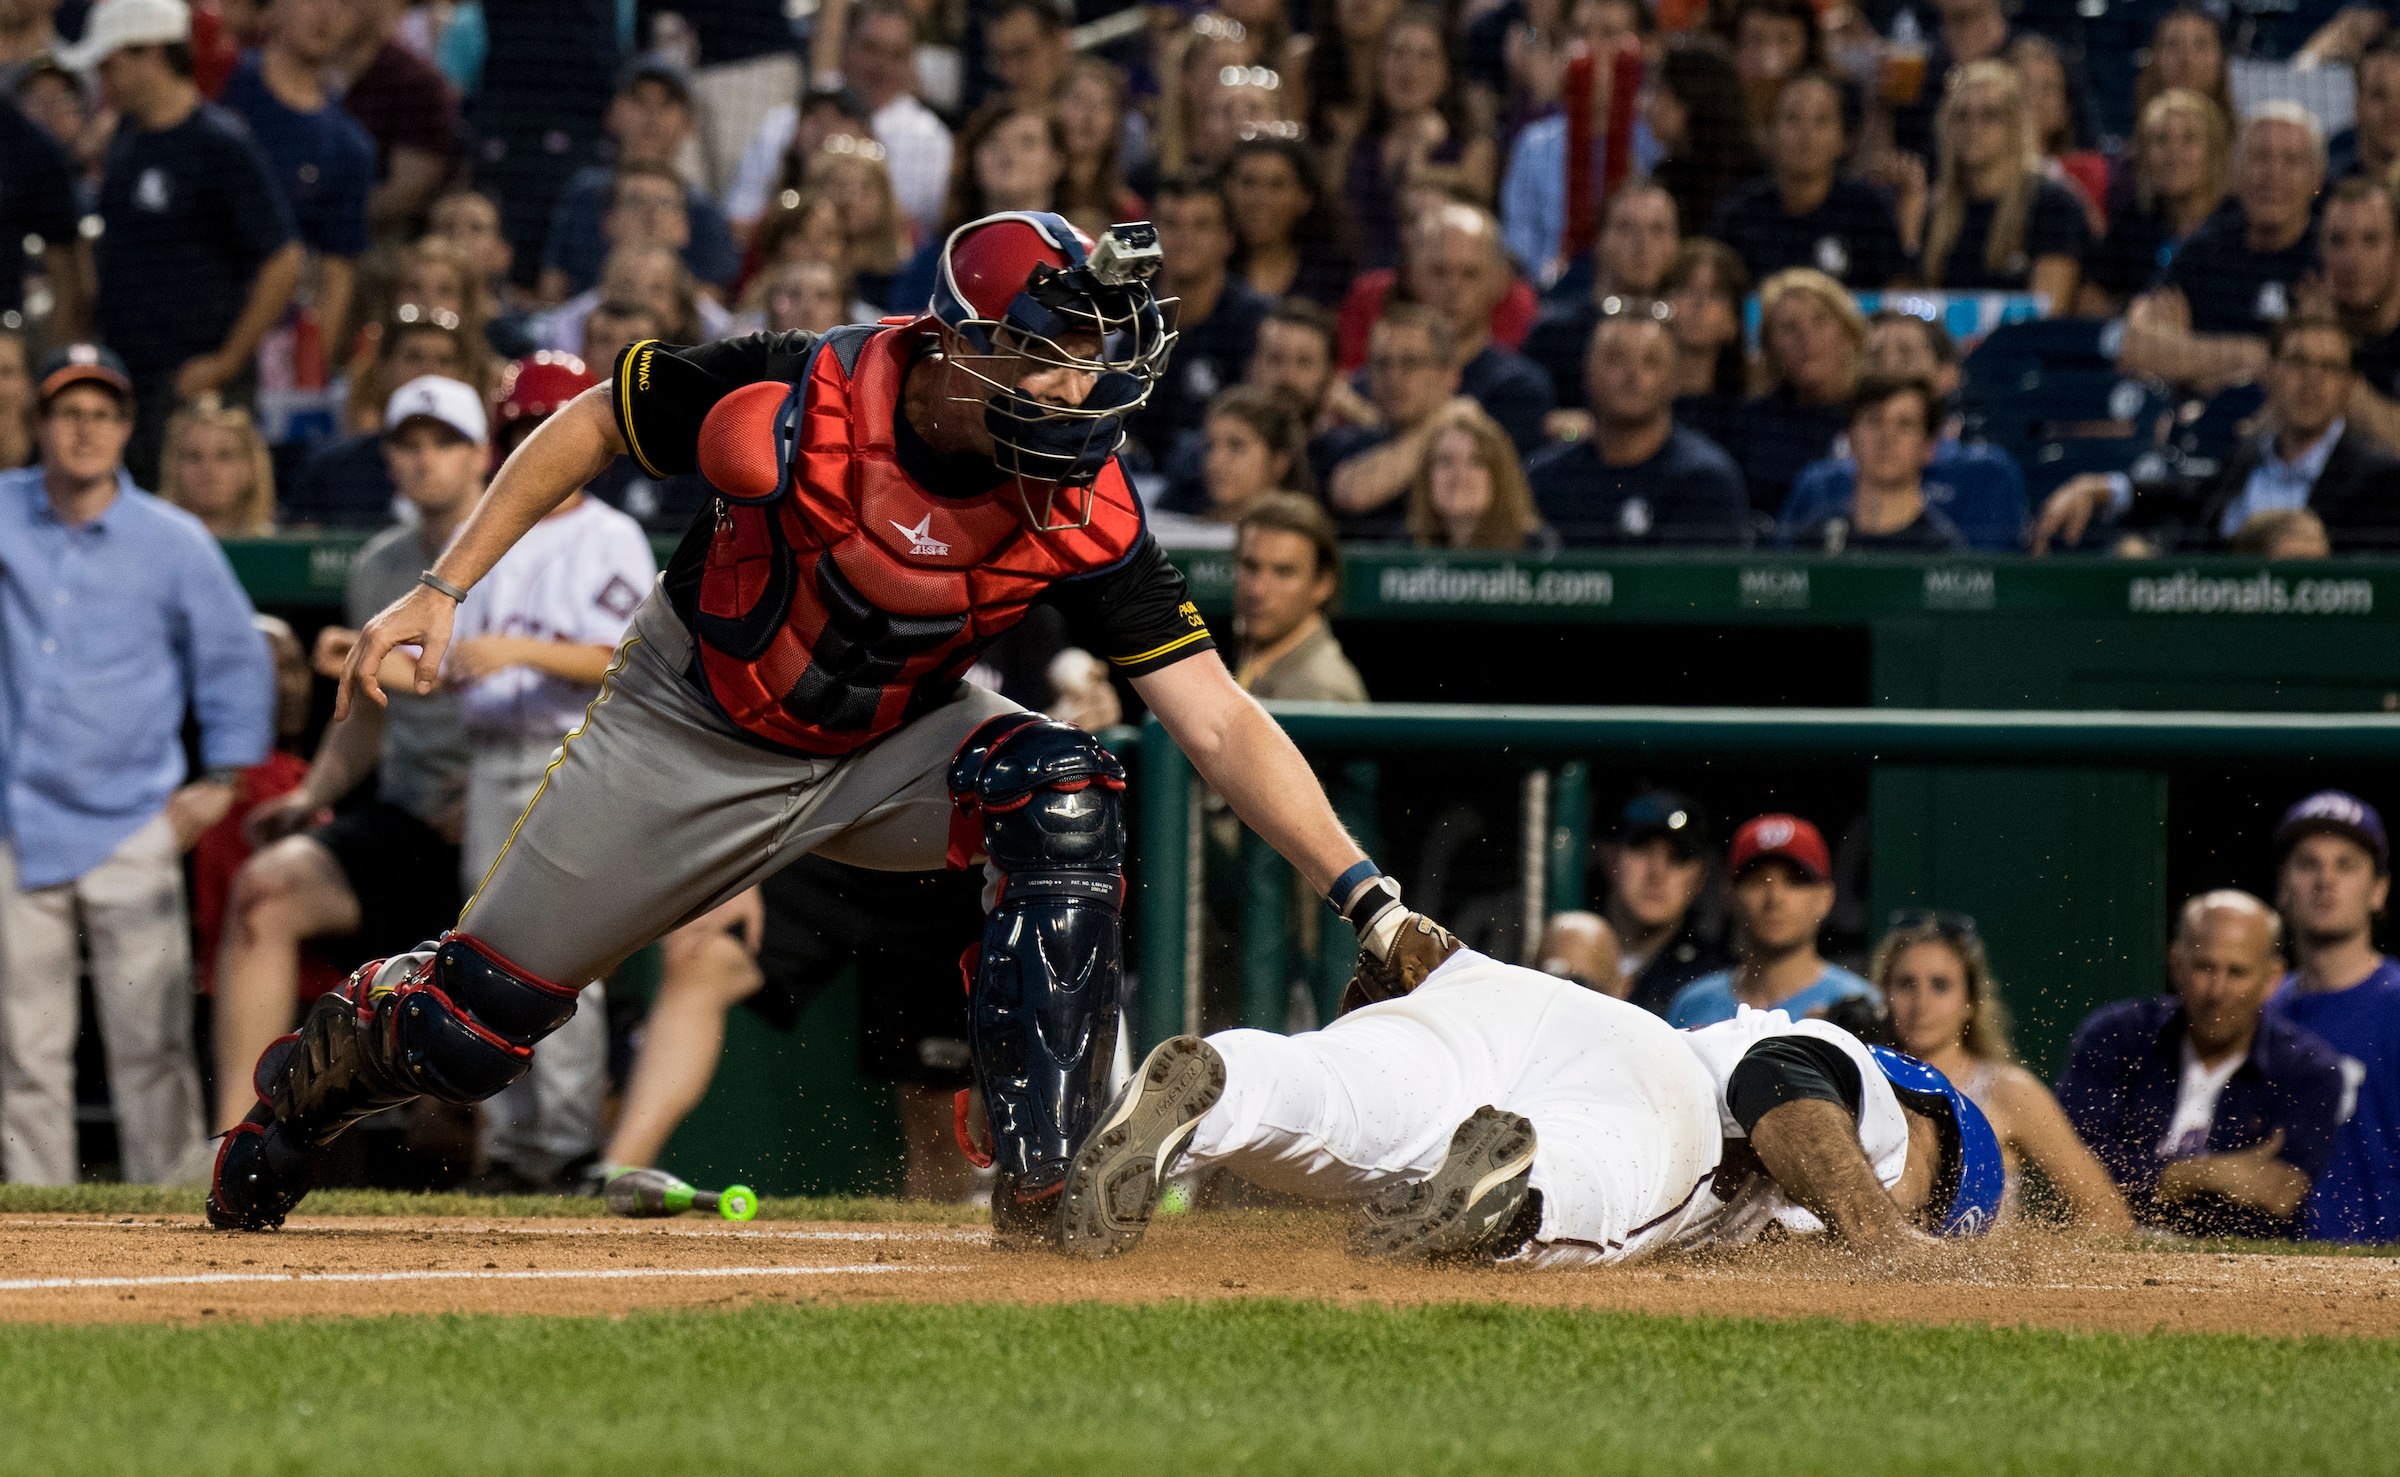 UNITED STATES - JUNE 15: Rep. Jimmy Panetta, D-Calif., slides in safe at home as GOP catcher Rep. Rodney Davis, R-Ill., tries to apply the tag during the the annual Congressional Baseball Game at Nationals Park in Washington on Thursday, June 15, 2017. (Photo By Bill Clark/CQ Roll Call)